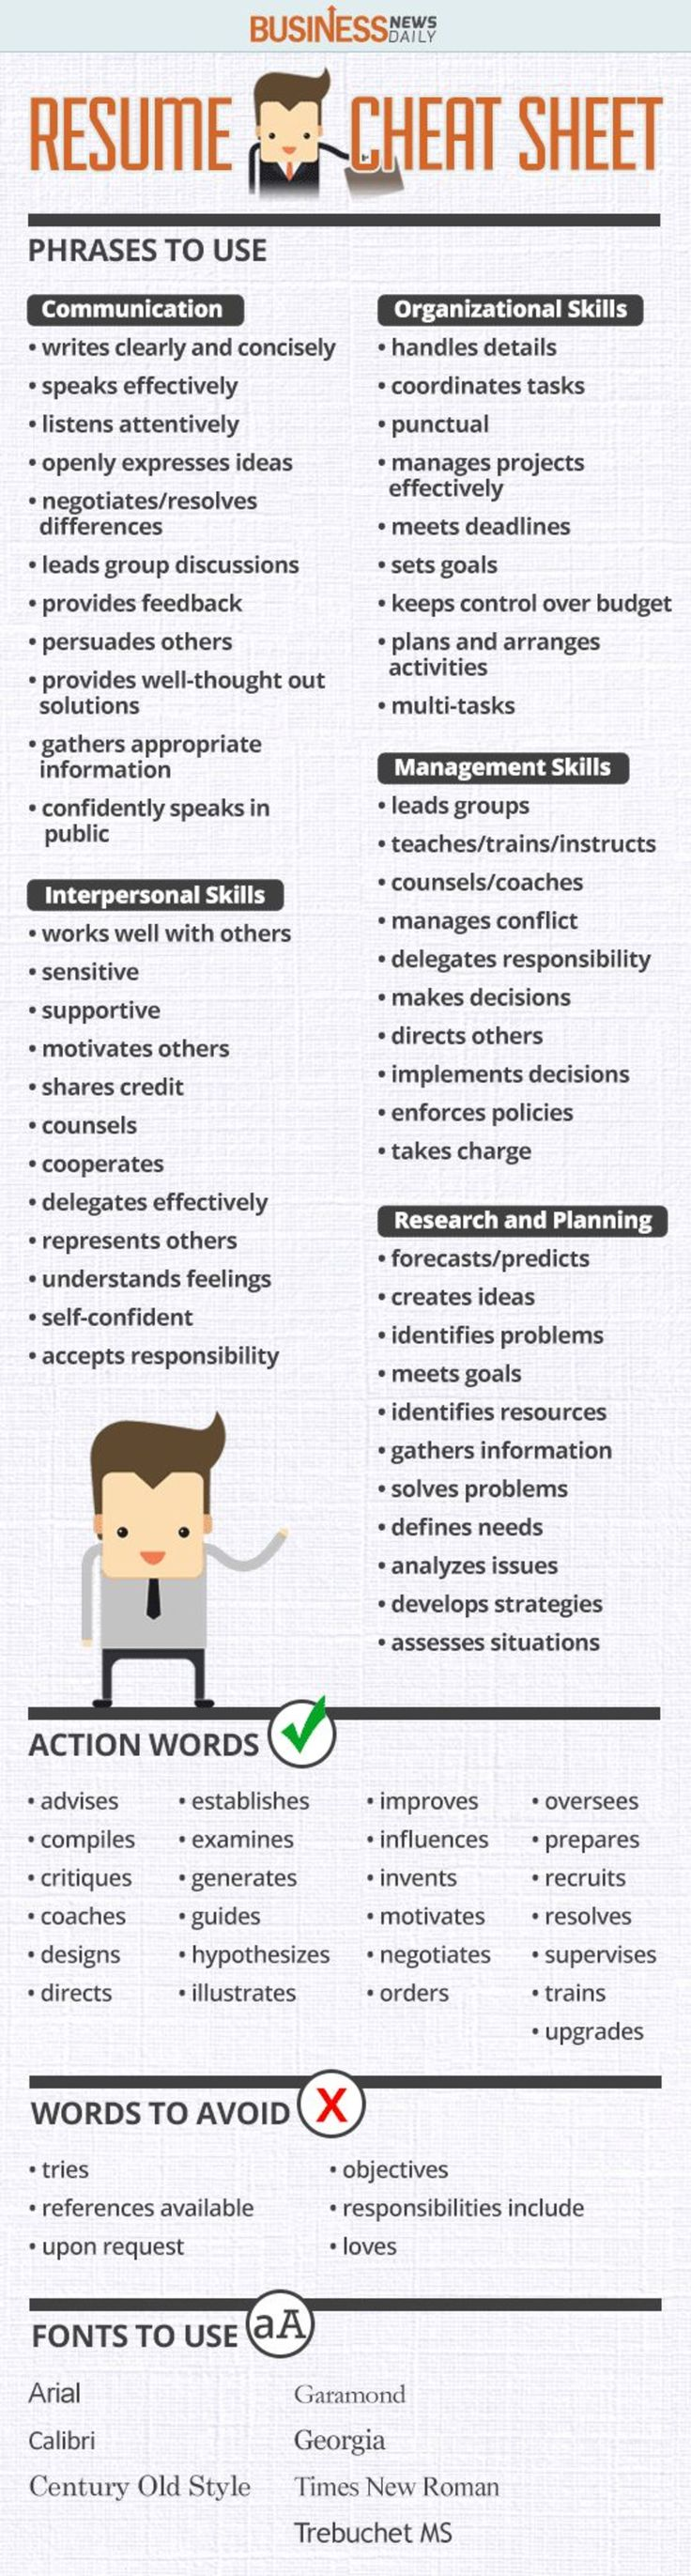 the ultimate cheat sheet for the perfect resume